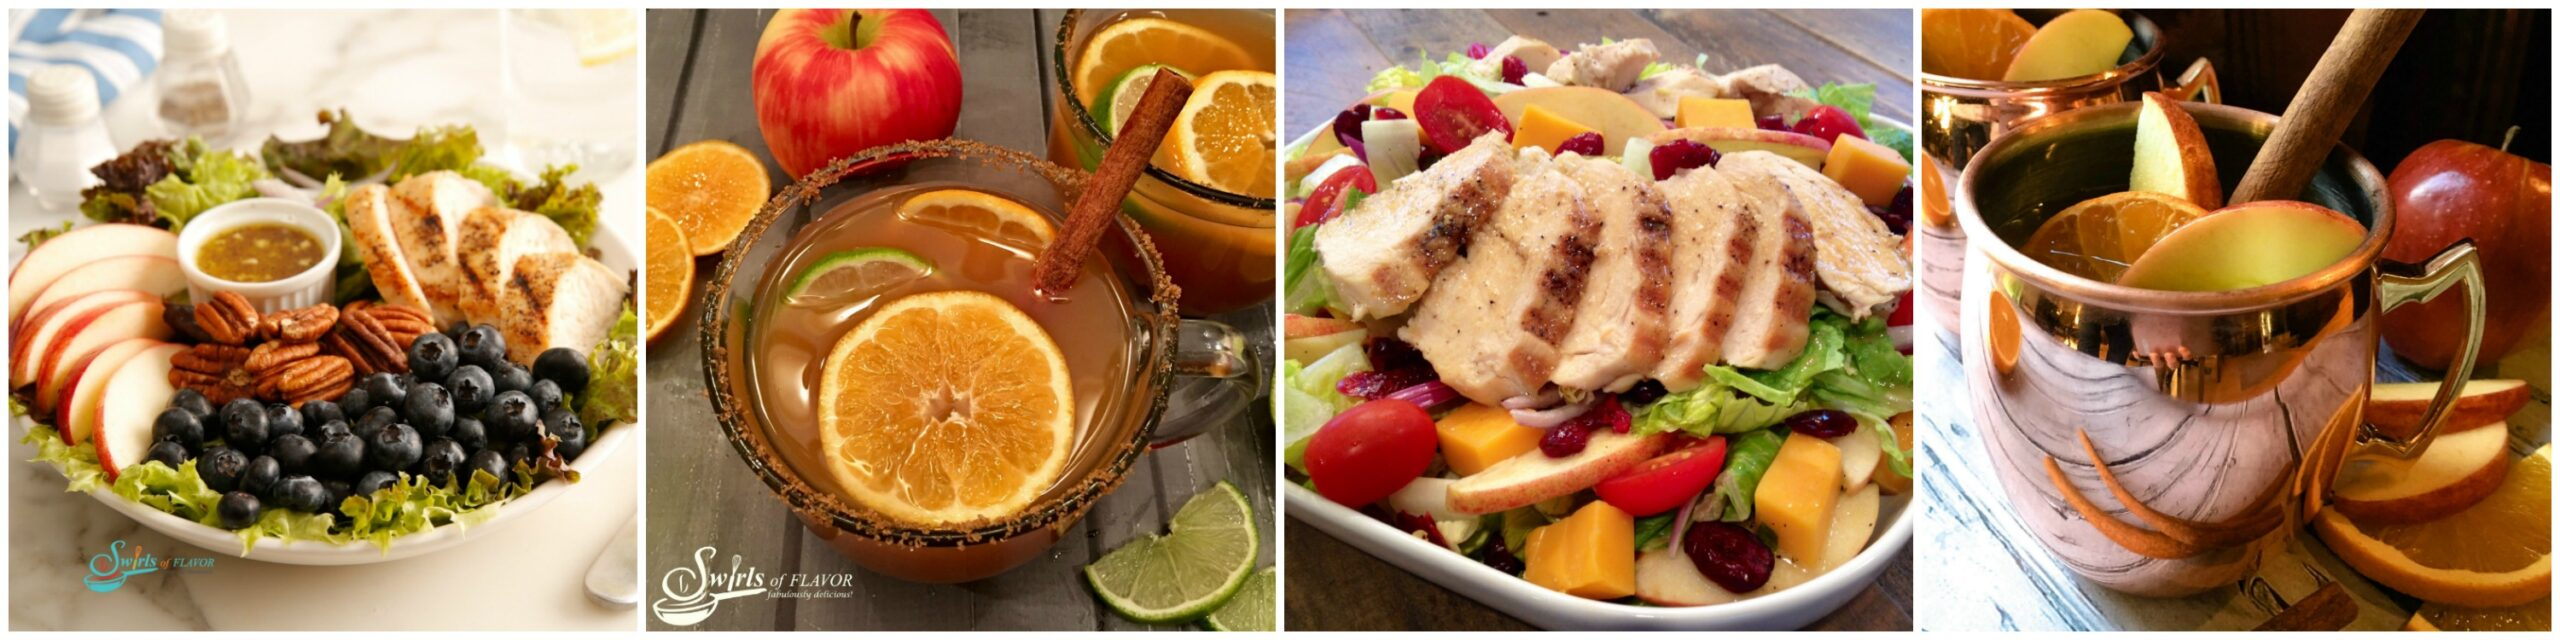 Left to right: Apple Pecan Salad; Mulled Apple Cider; Apple Cheddar Chicken Salad; Apple Cider Moscow Mule